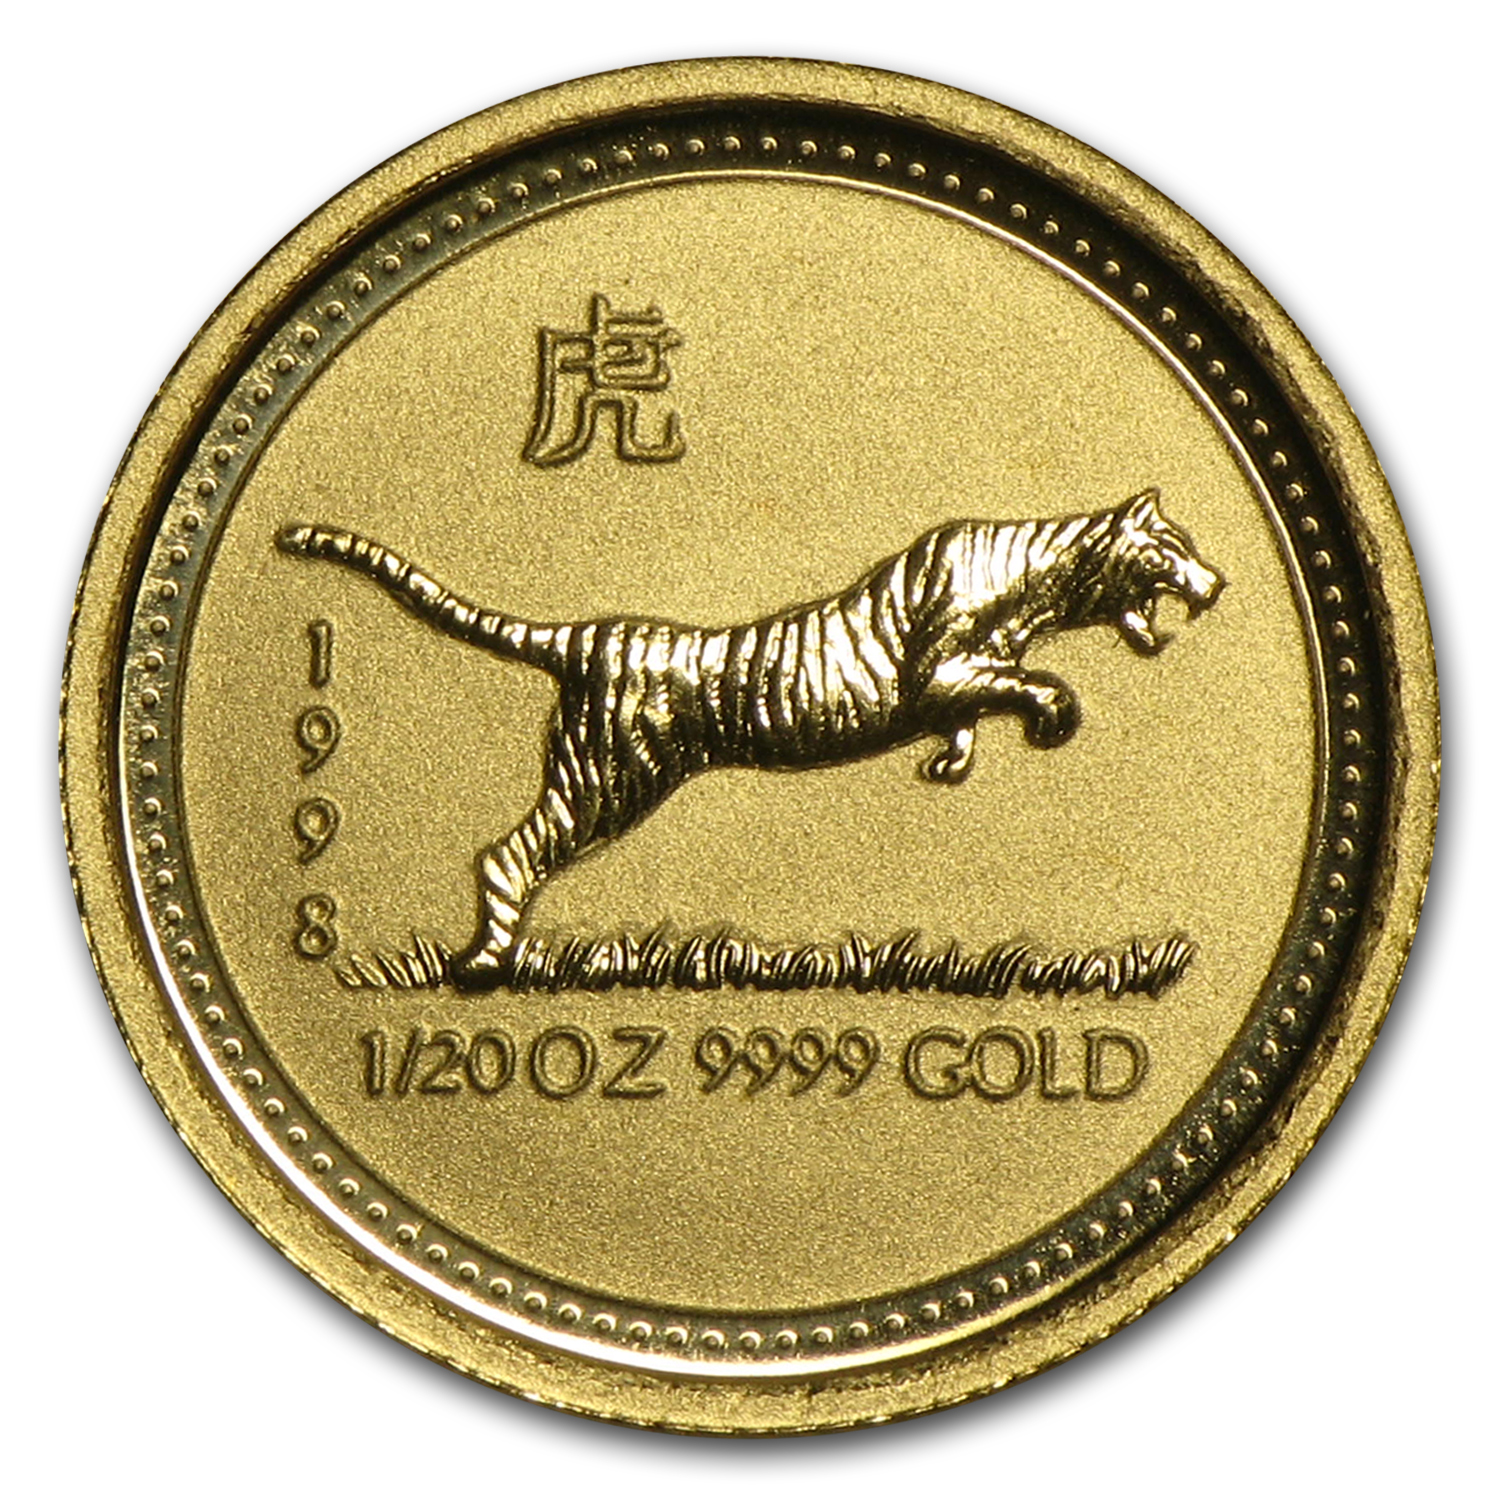 1998 Australia 1/20 oz Gold Lunar Tiger BU (Series I)